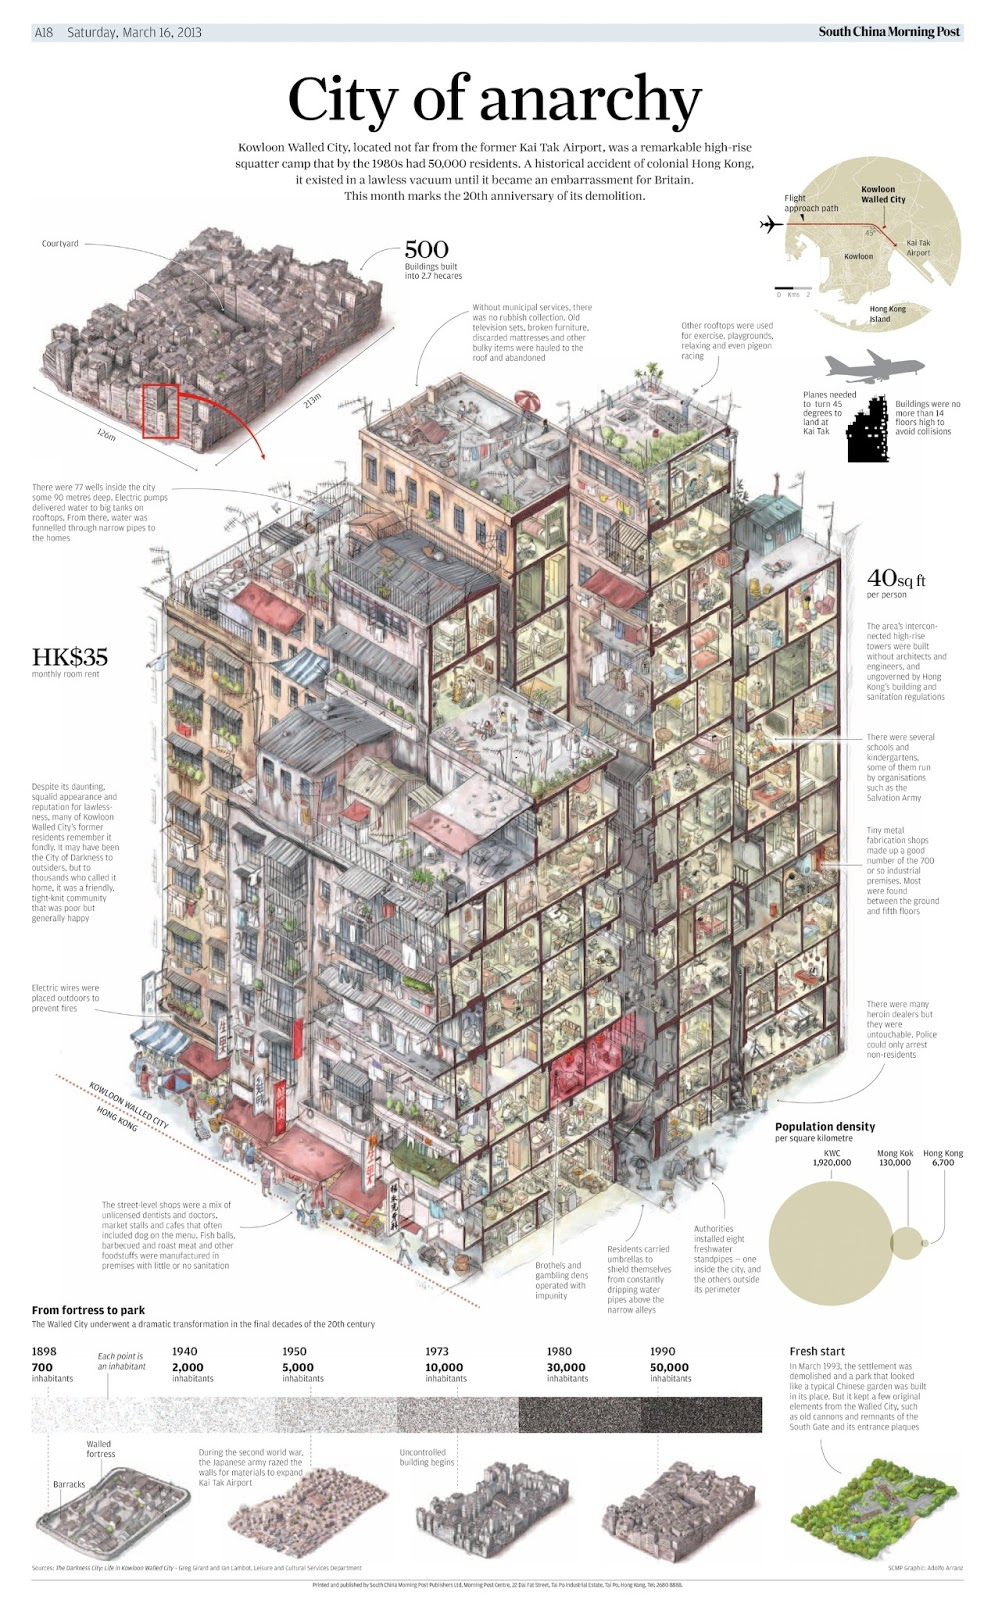 Kowloon Josh Wieder walled city